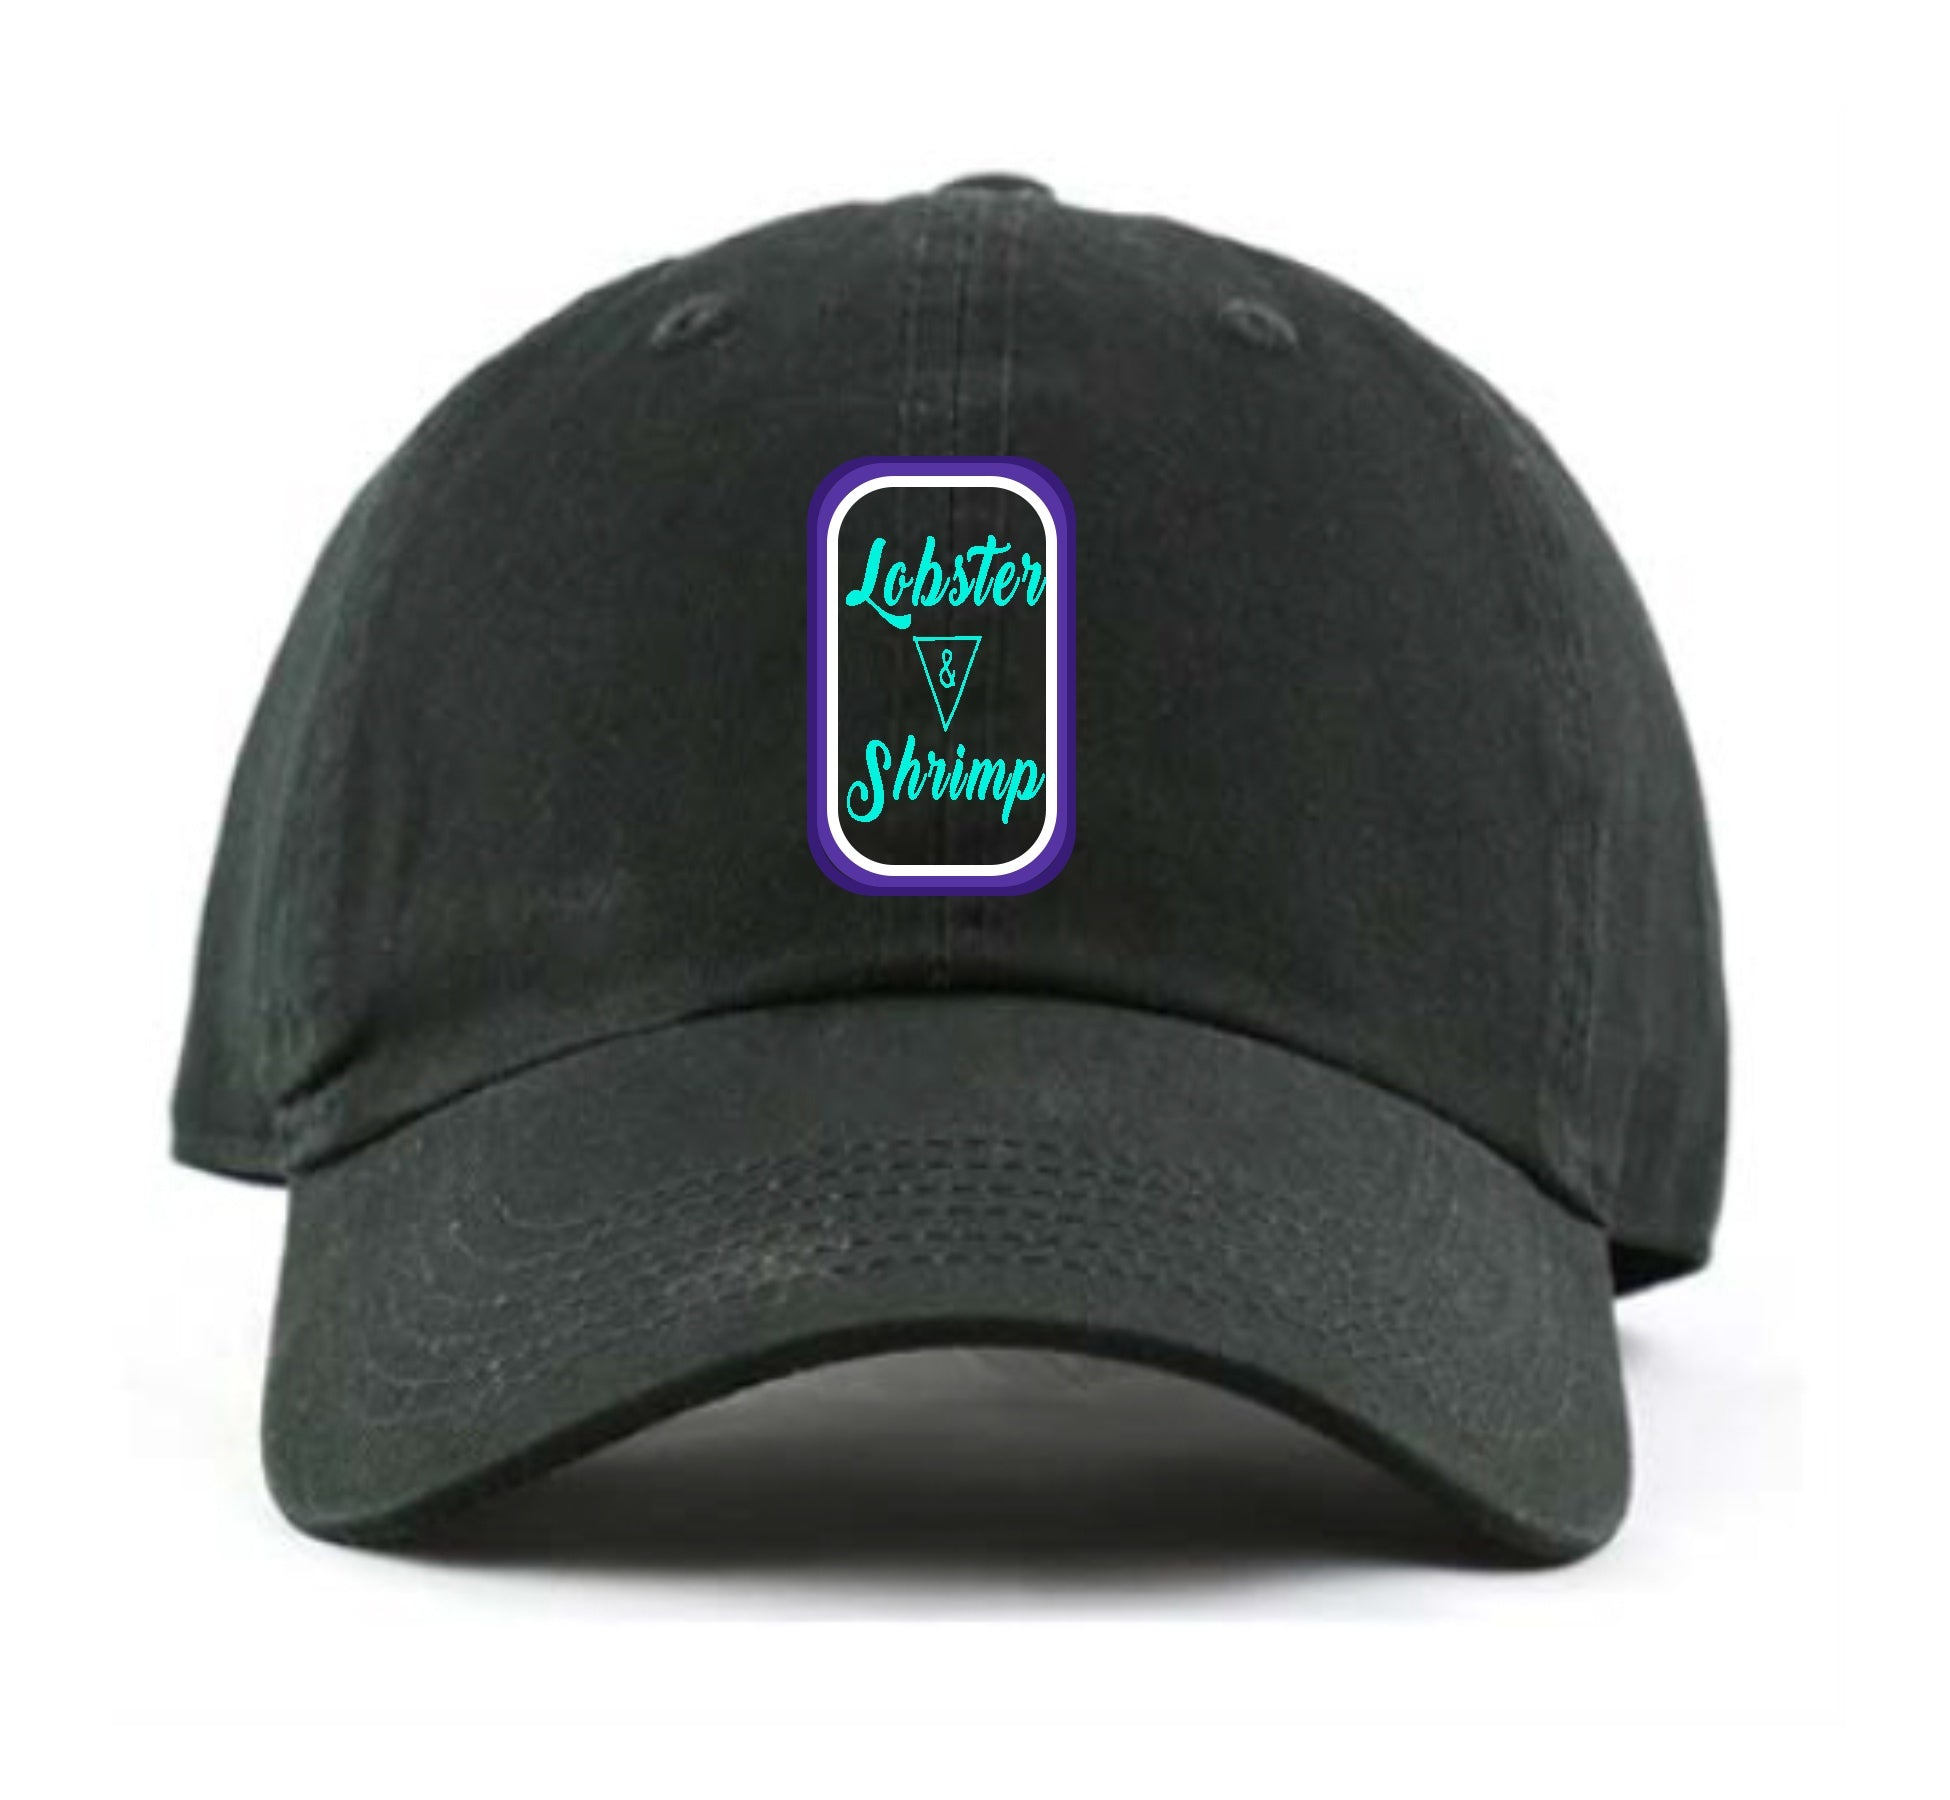 Lobster & Shrimp Dad Hat (Black)